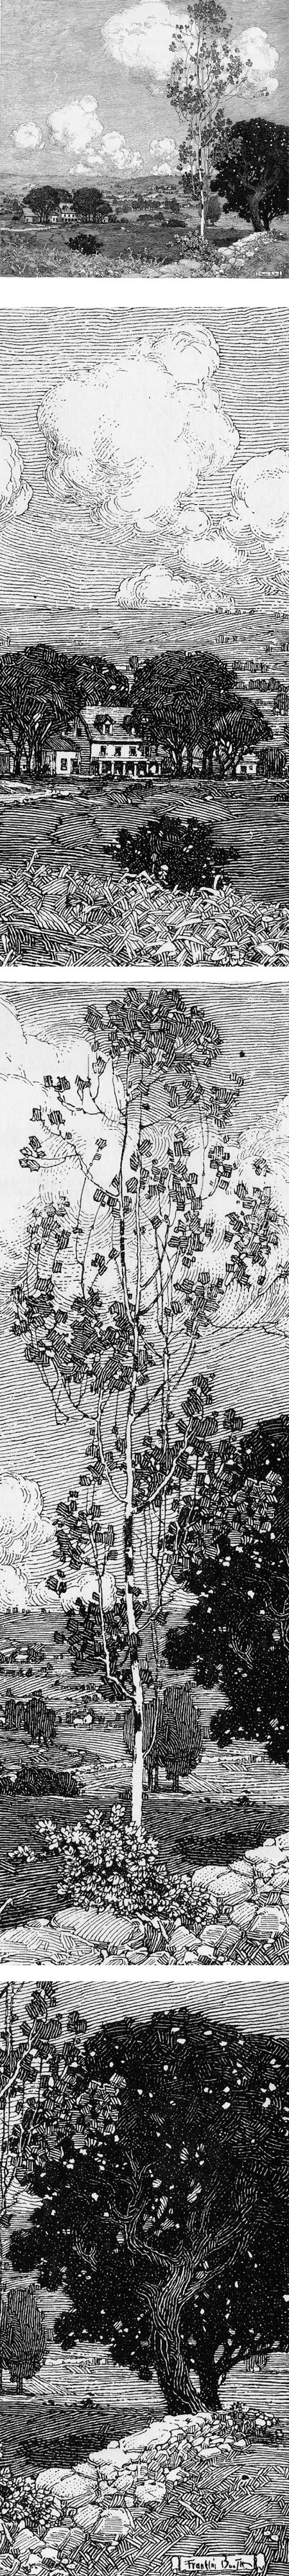 Franklin Booth pen and ink landscape drawing